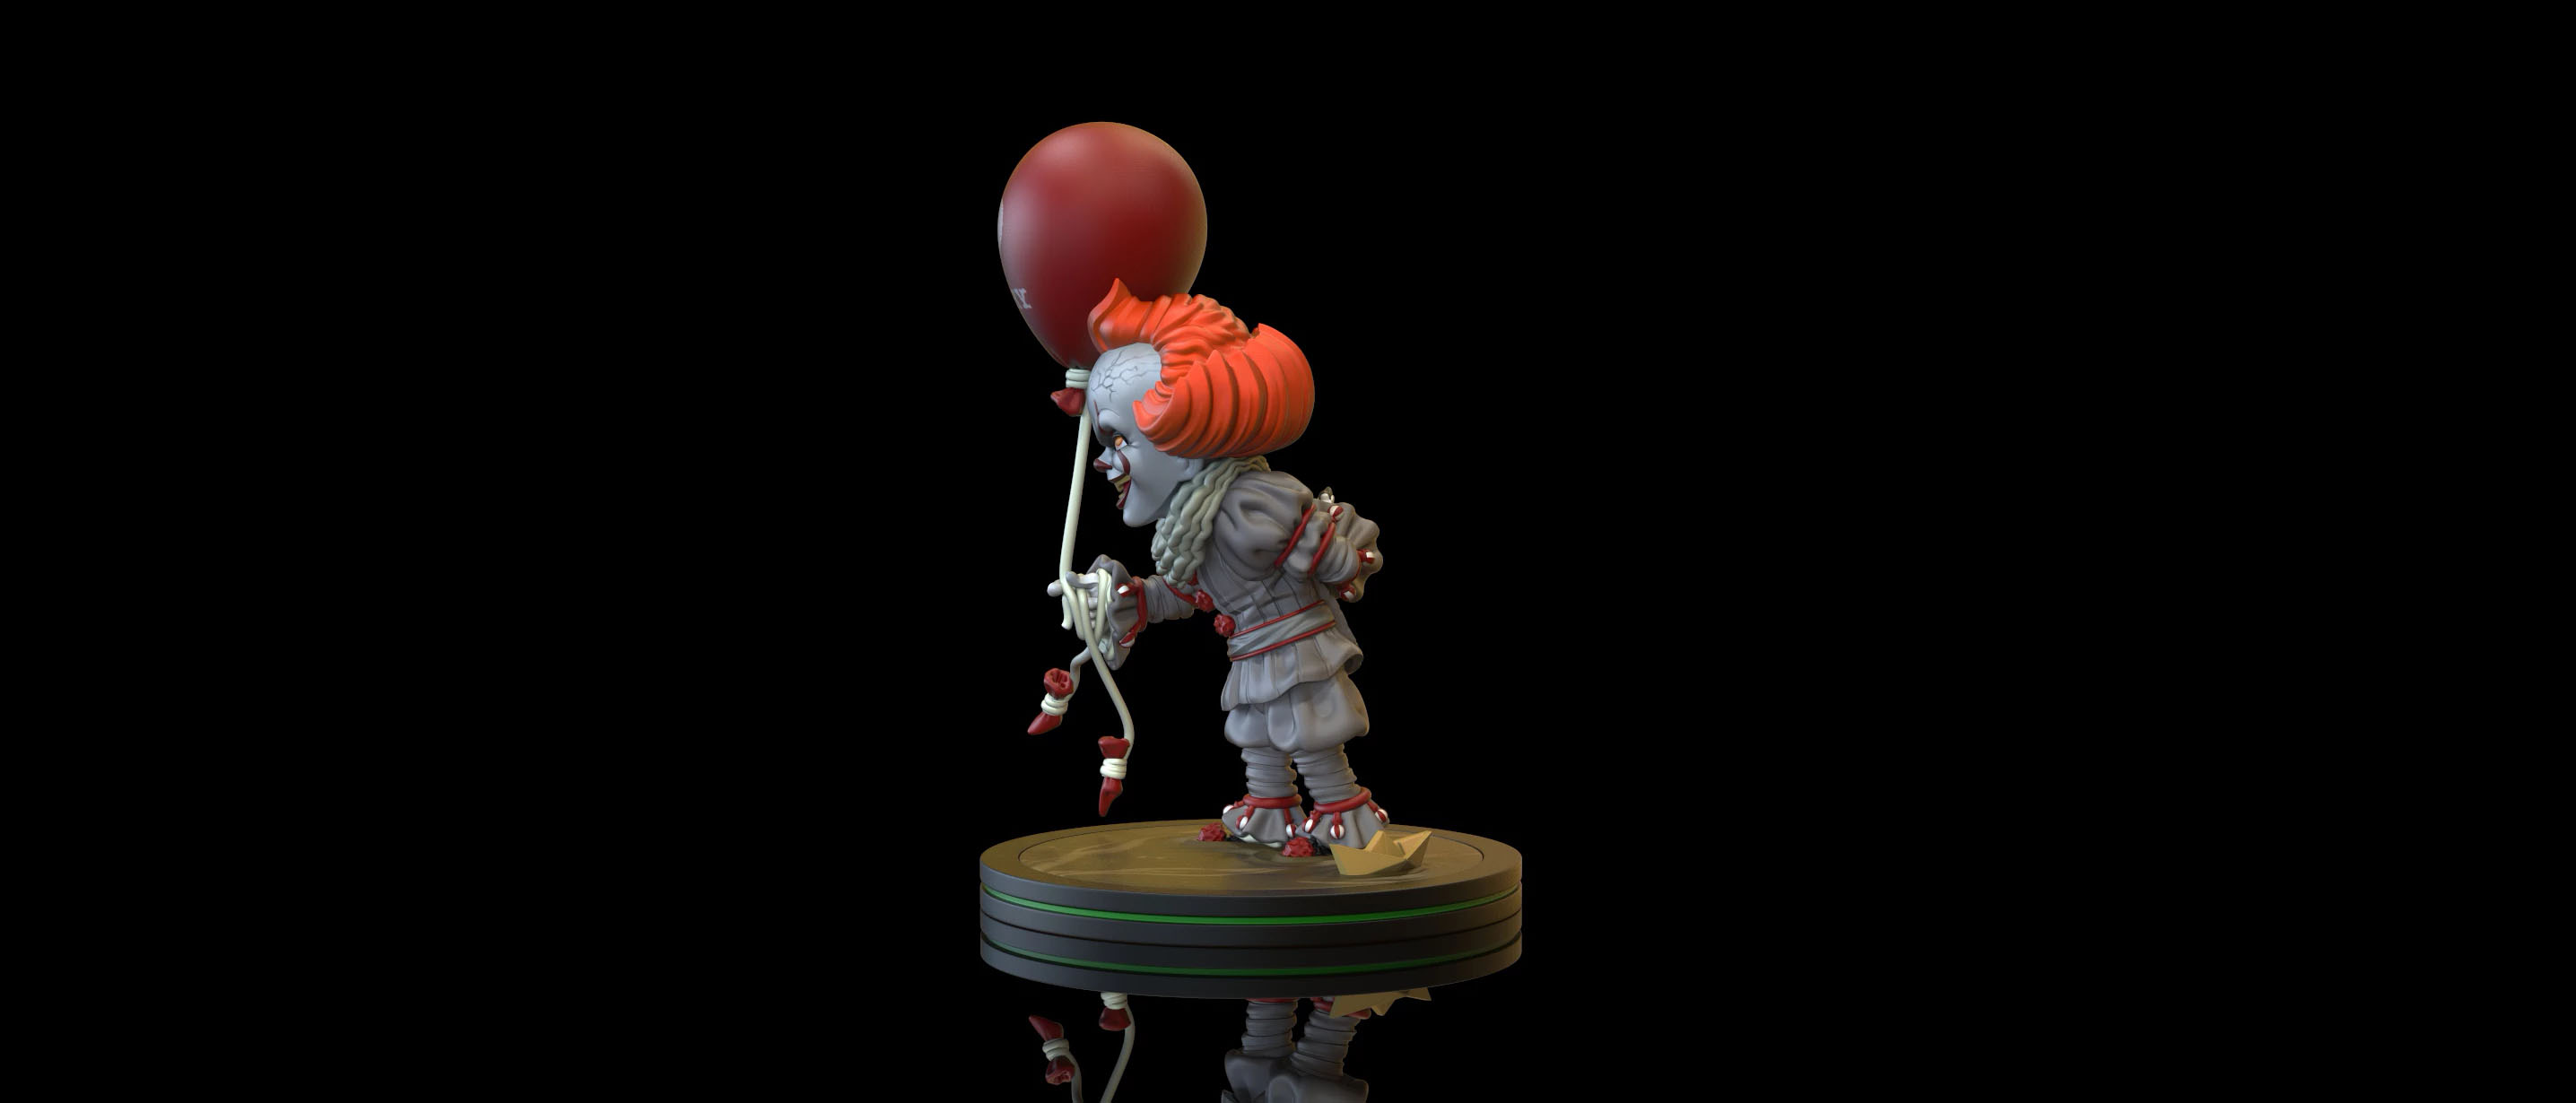 IT2 Pennywise Q Fig 002